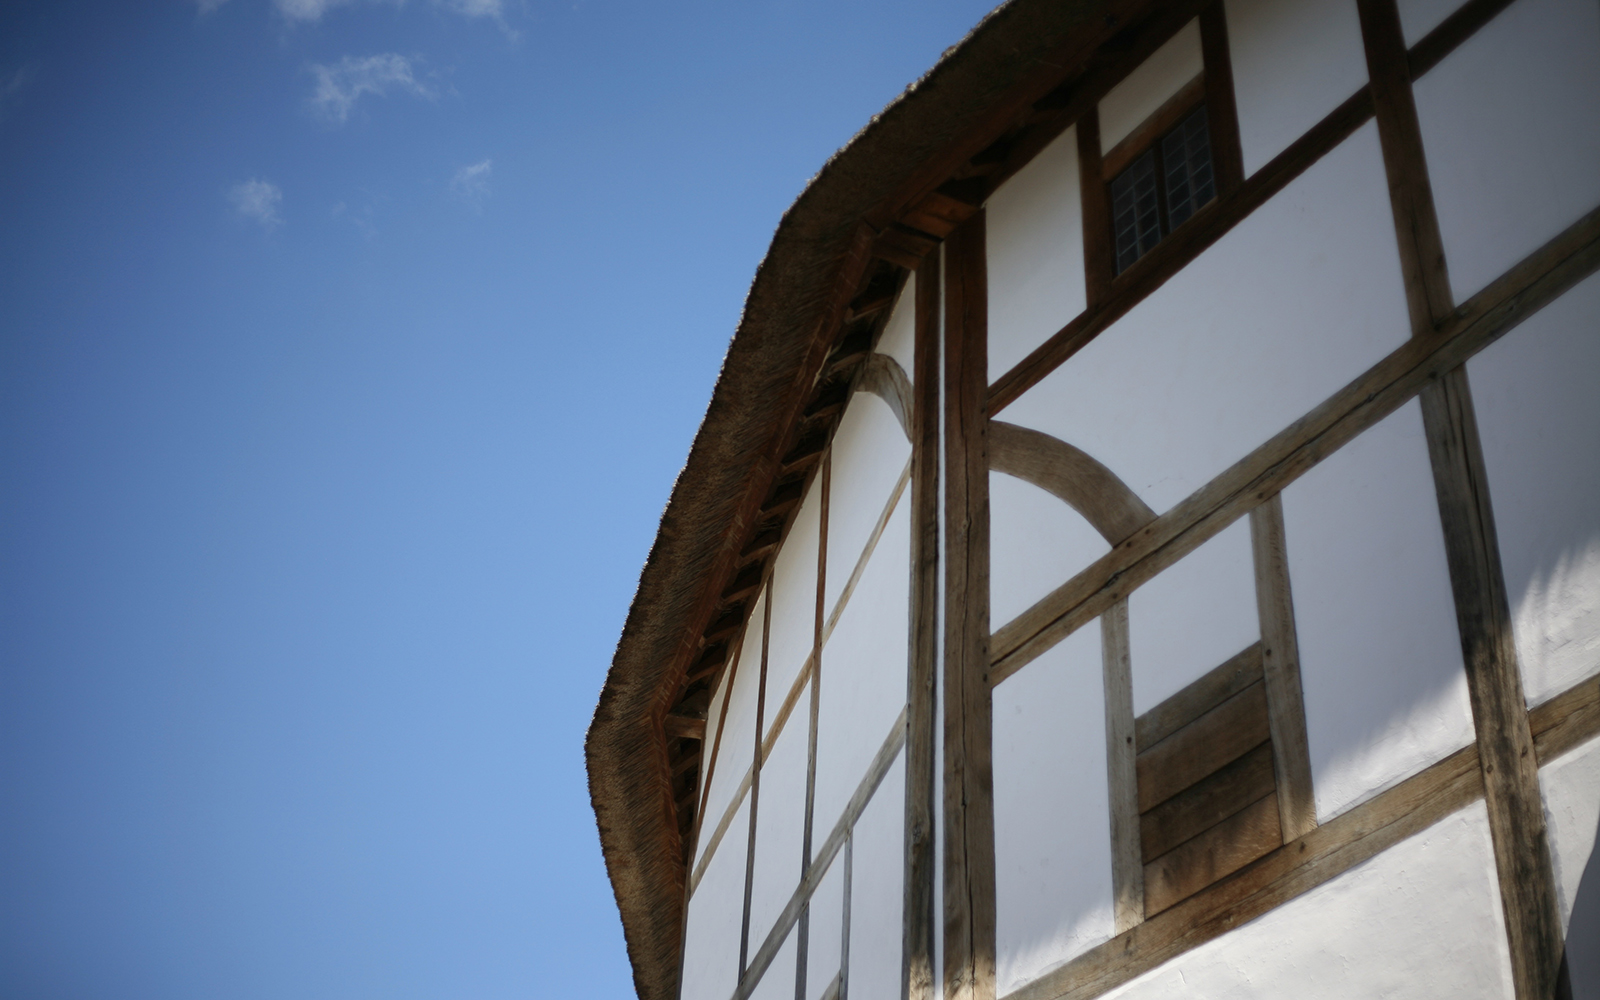 The exterior white wattle and daub timber walls of the Globe Theatre loom above, with a spring blue sky overhead